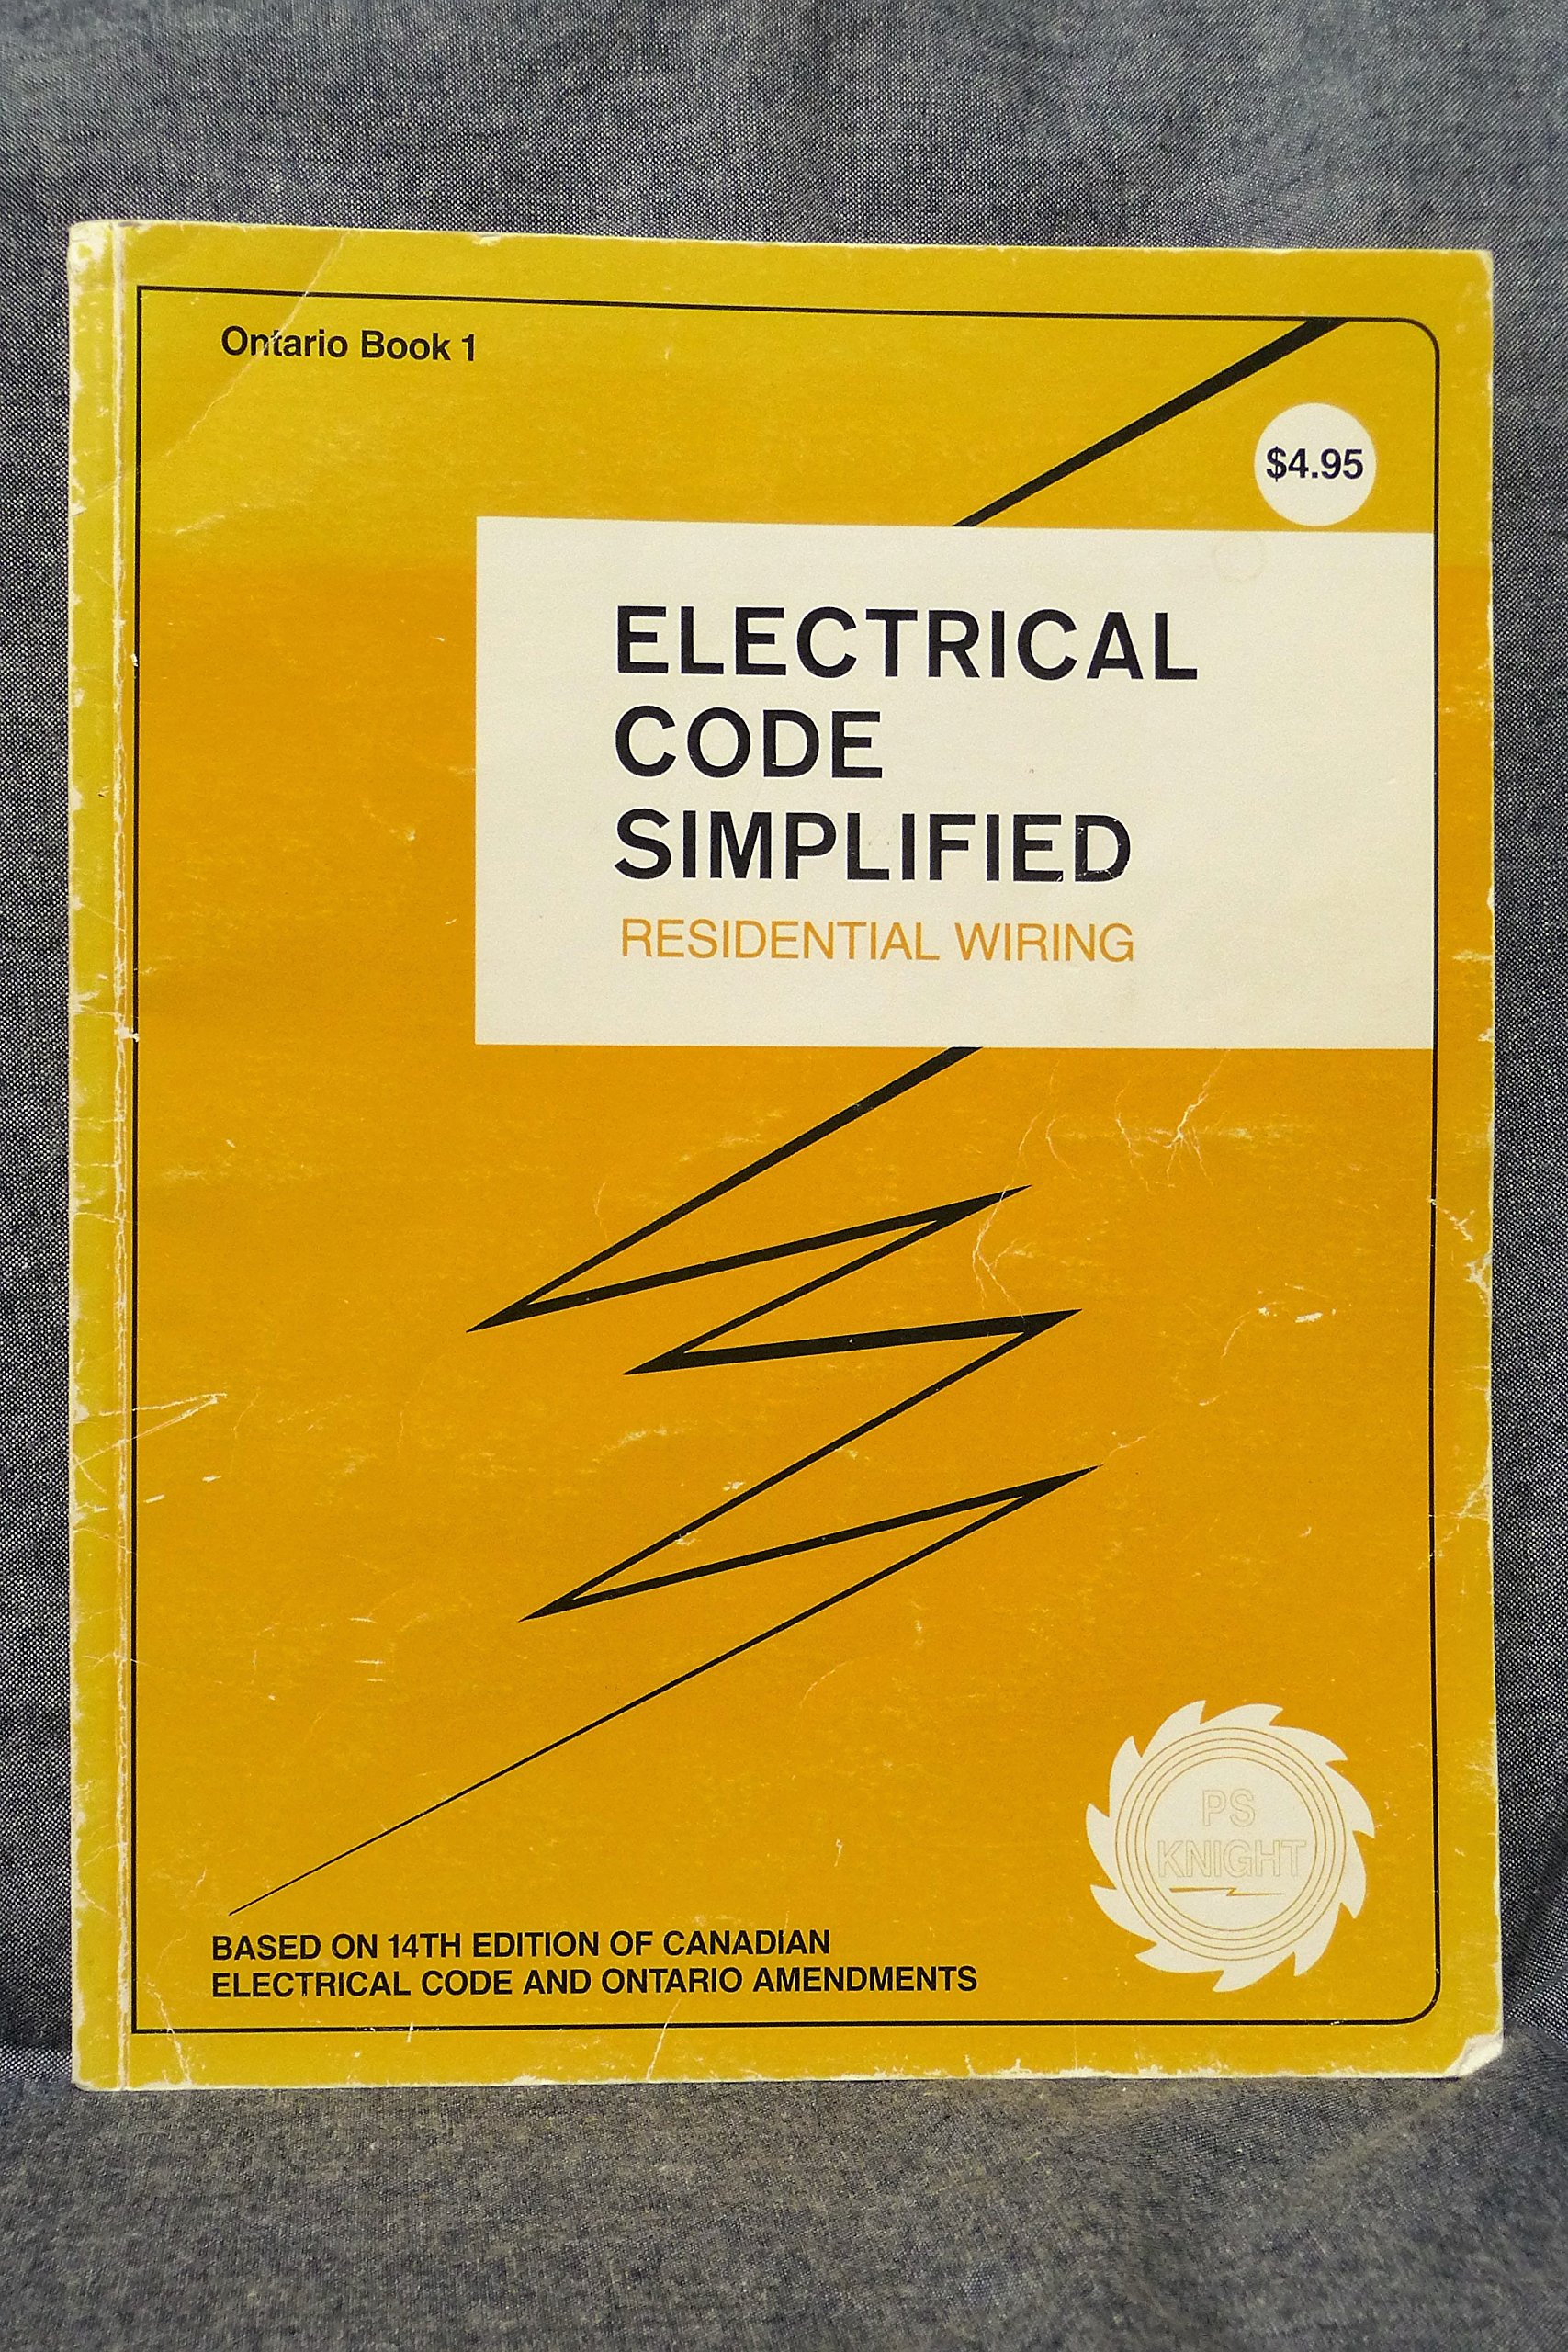 Electrical Code Simplified Ontario Book 1 Residential Wiring: P. S. Knight:  9780920312148: Books - Amazon.ca